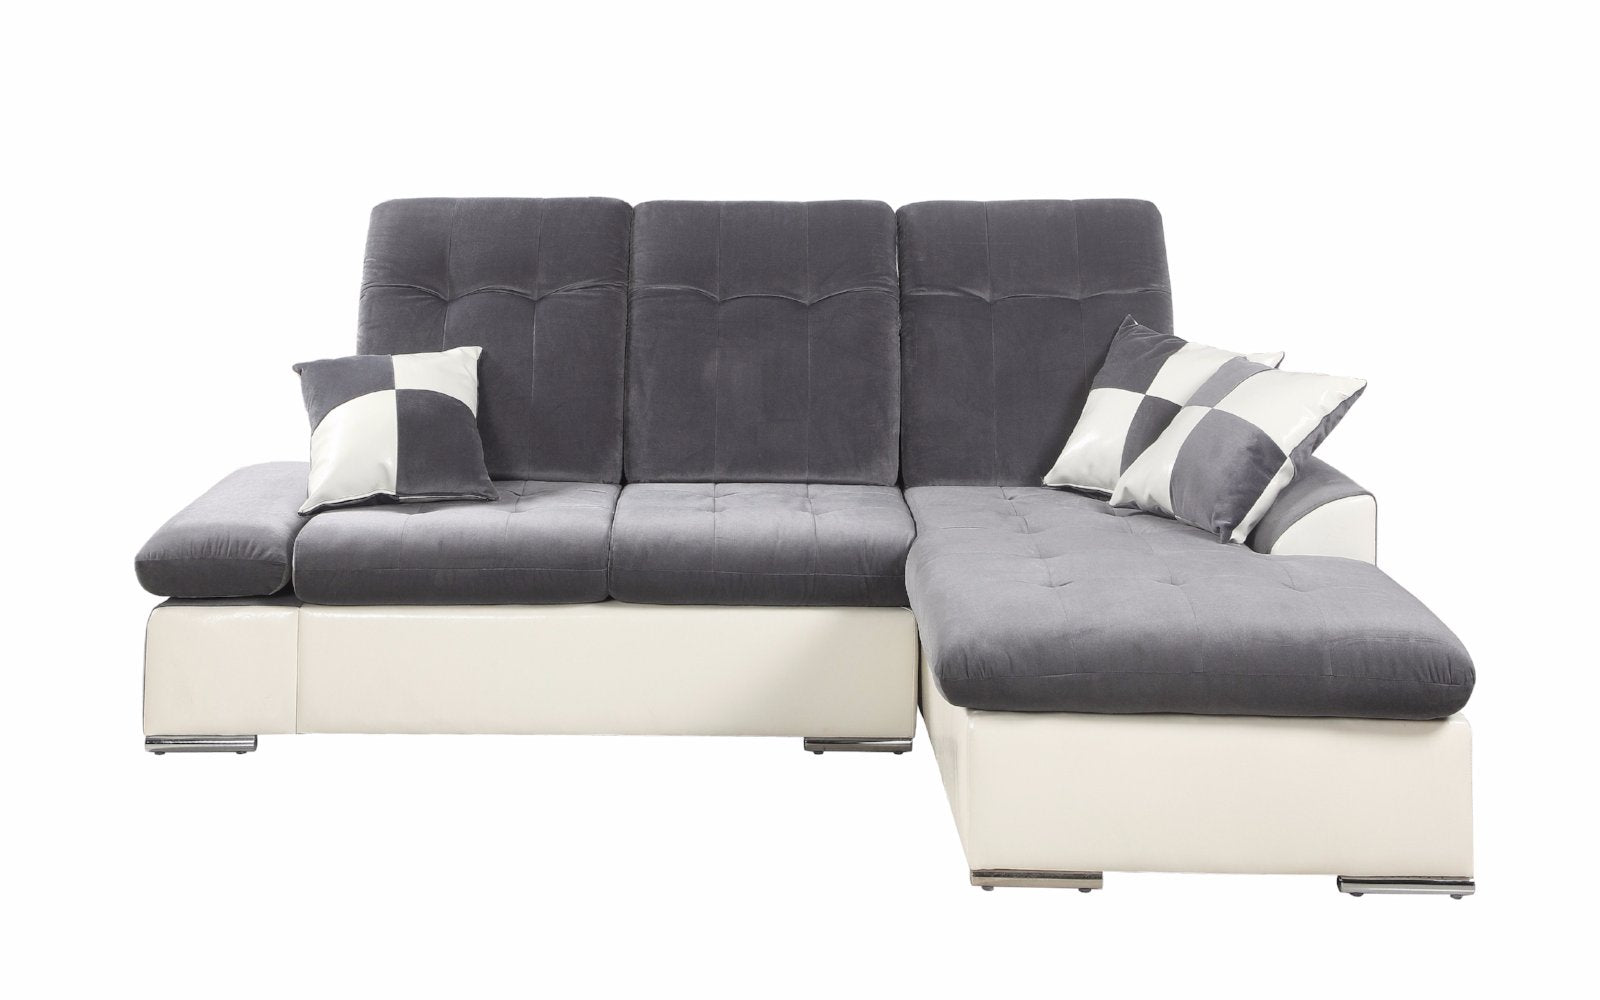 Faux Leather Microfiber Sectional Sofa Image